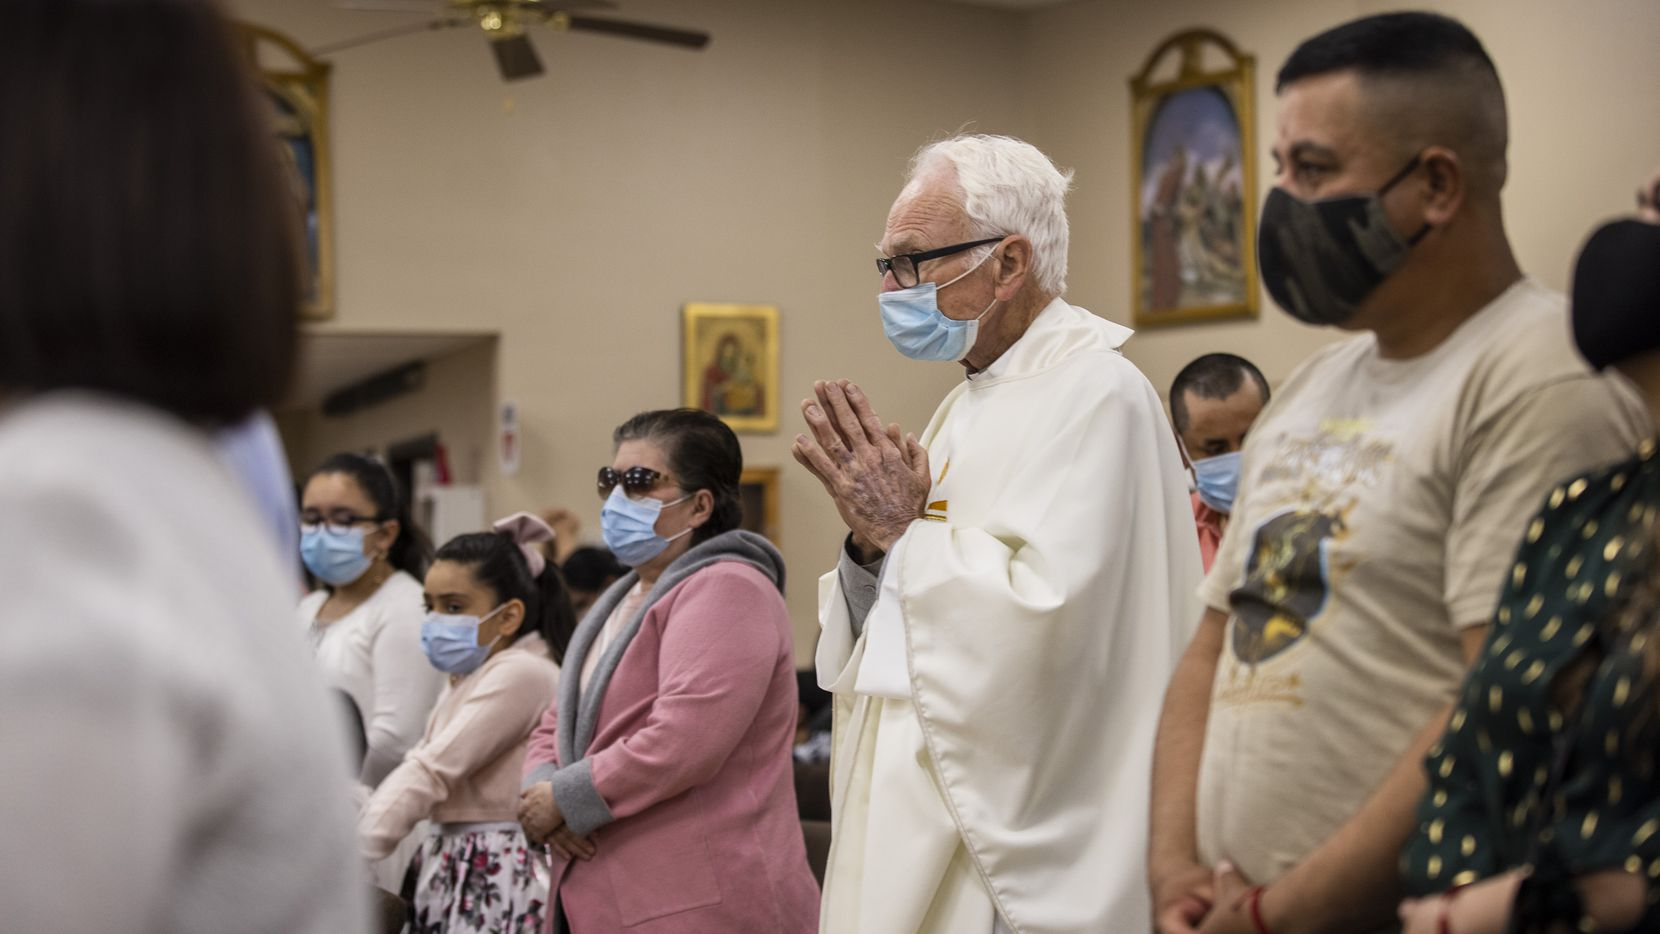 The Rev. Timothy Gollob proceeds to the sanctuary of Corpus Christi Catholic Parish to deliver a Spanish Easter Mass in Ferris.